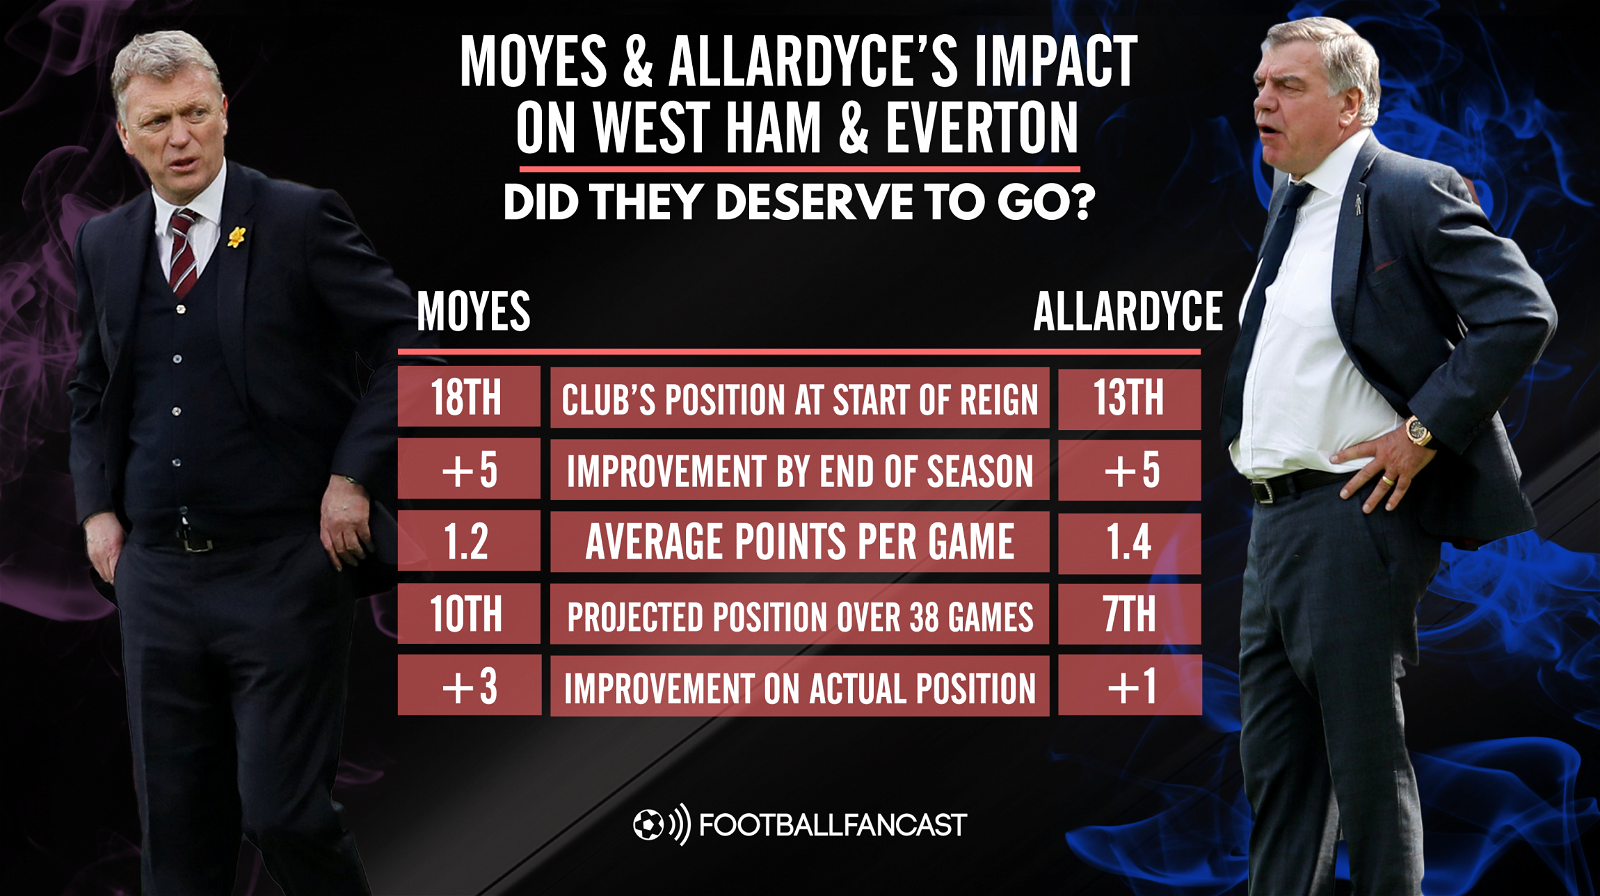 Allardyce and Moyes' performance for Everton and West Ham